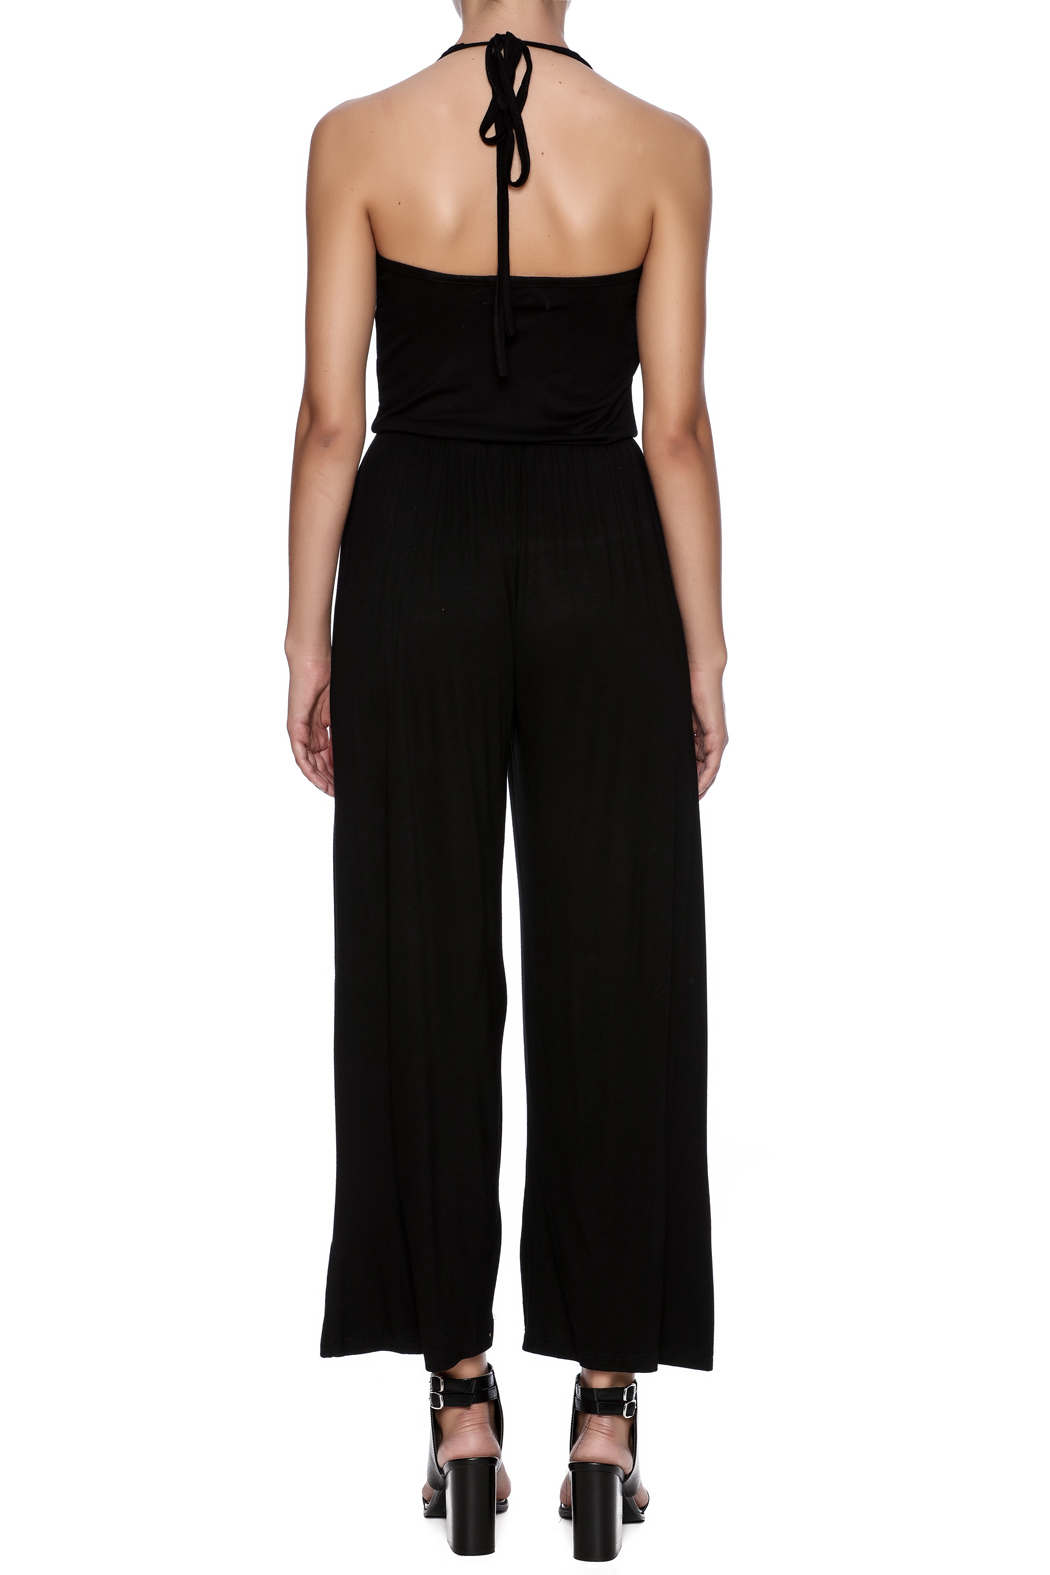 New York Collection Classic Ruffle Jumpsuit - Back Cropped Image